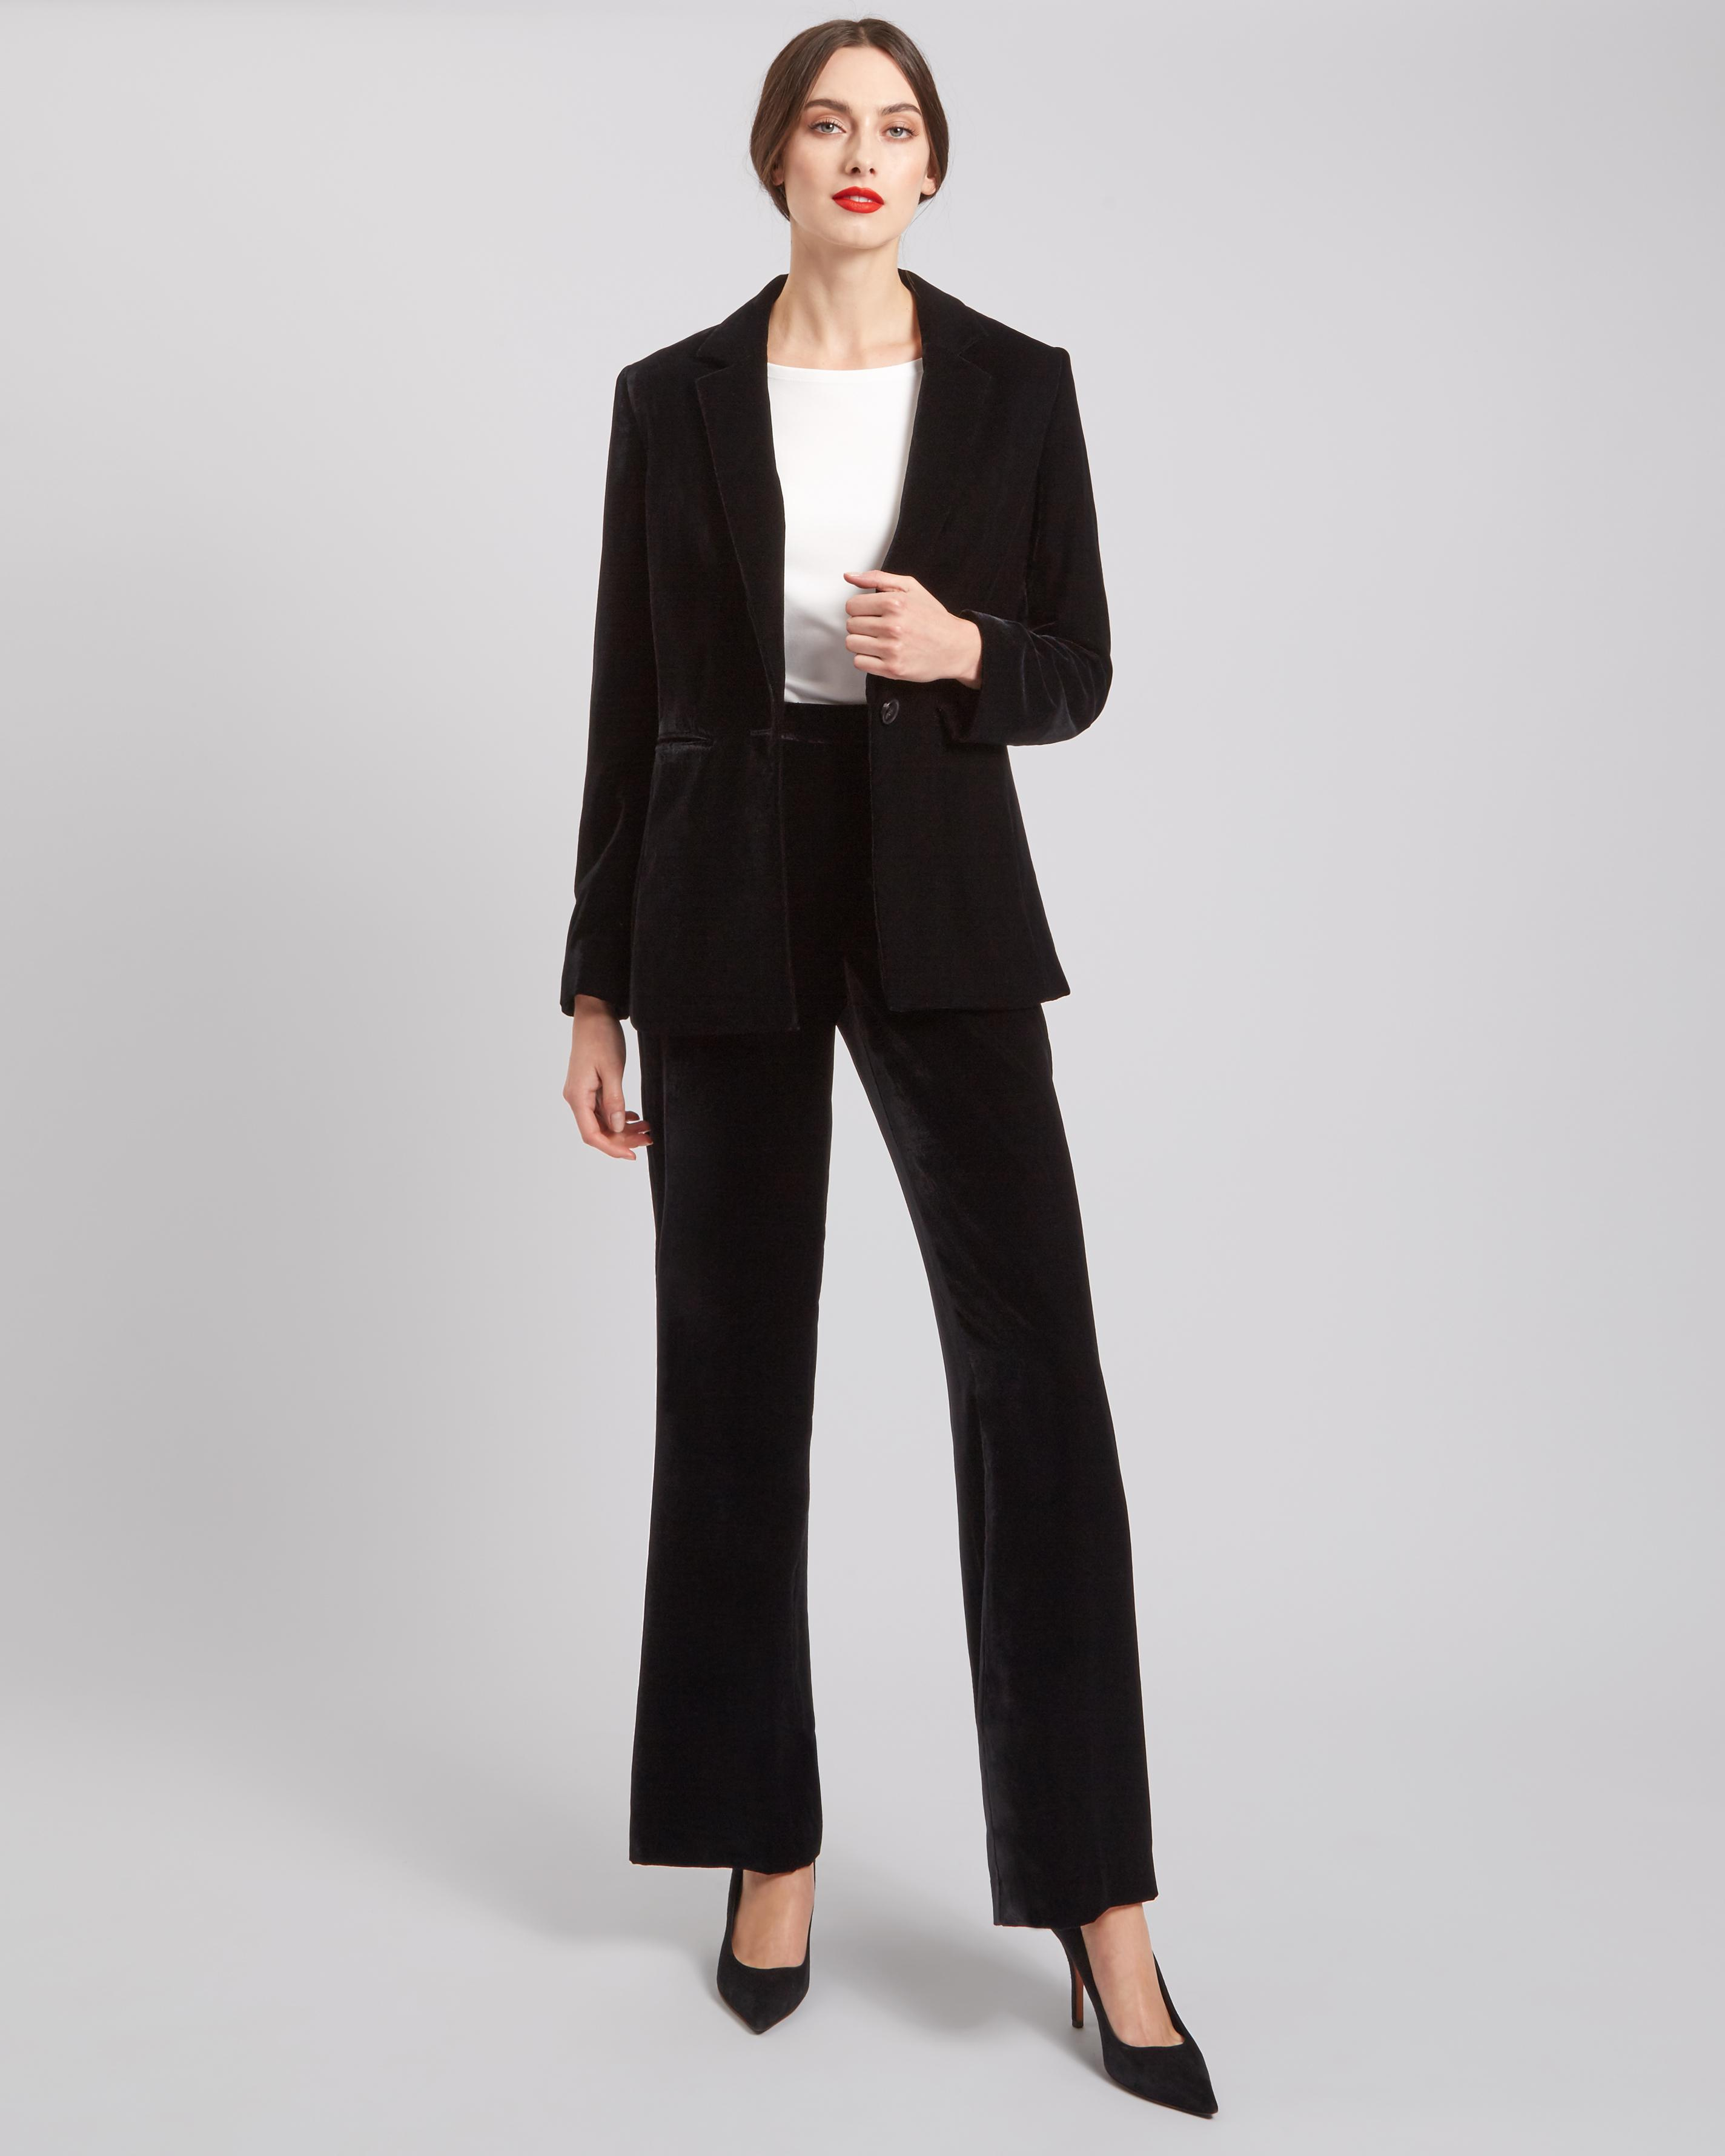 Tall Womens Clothing Stores In New York